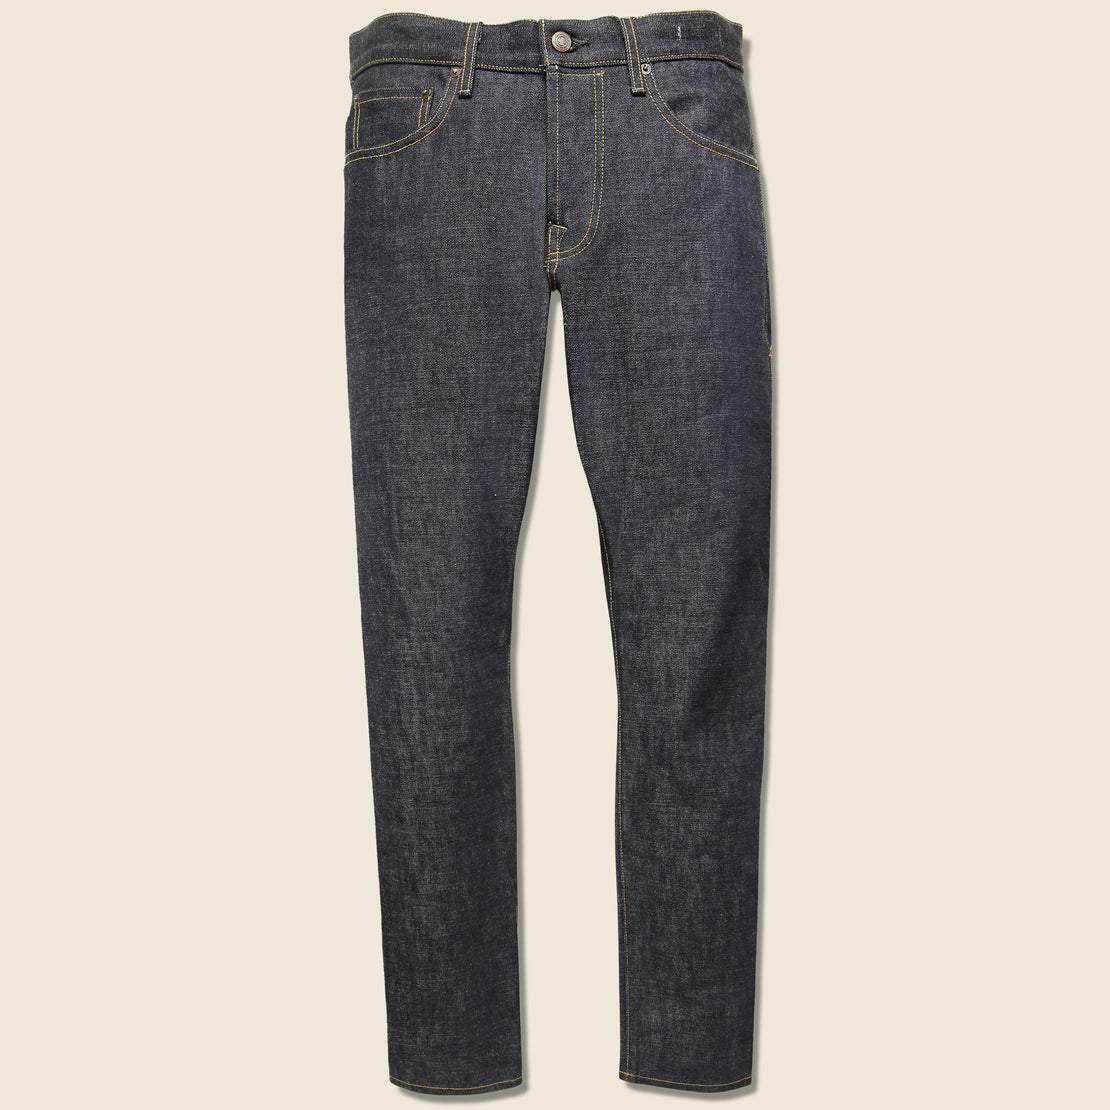 Imogene + Willie Barton Slim Japanese Selvedge Jean - Indigo